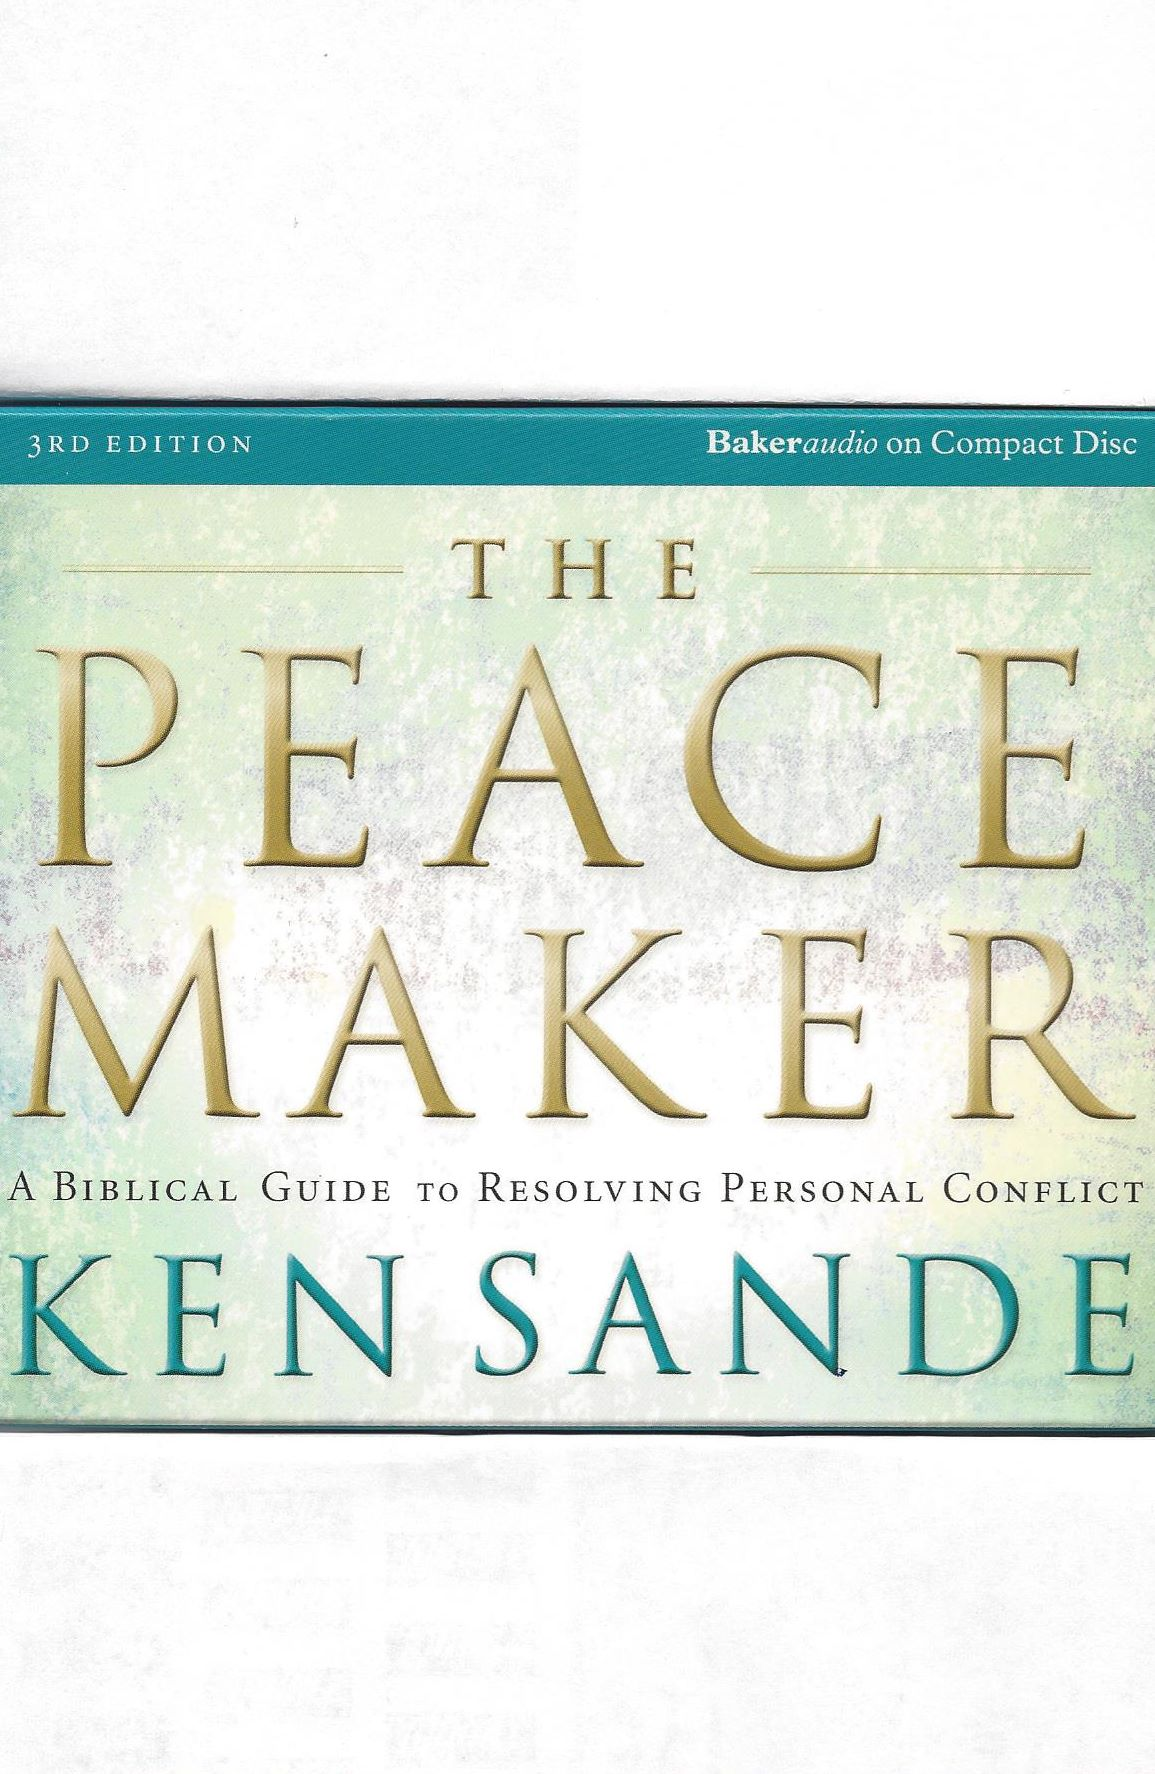 the peacemaker ken sande The peacemaker by ken sande, 9780801064852, available at book depository with free delivery worldwide.